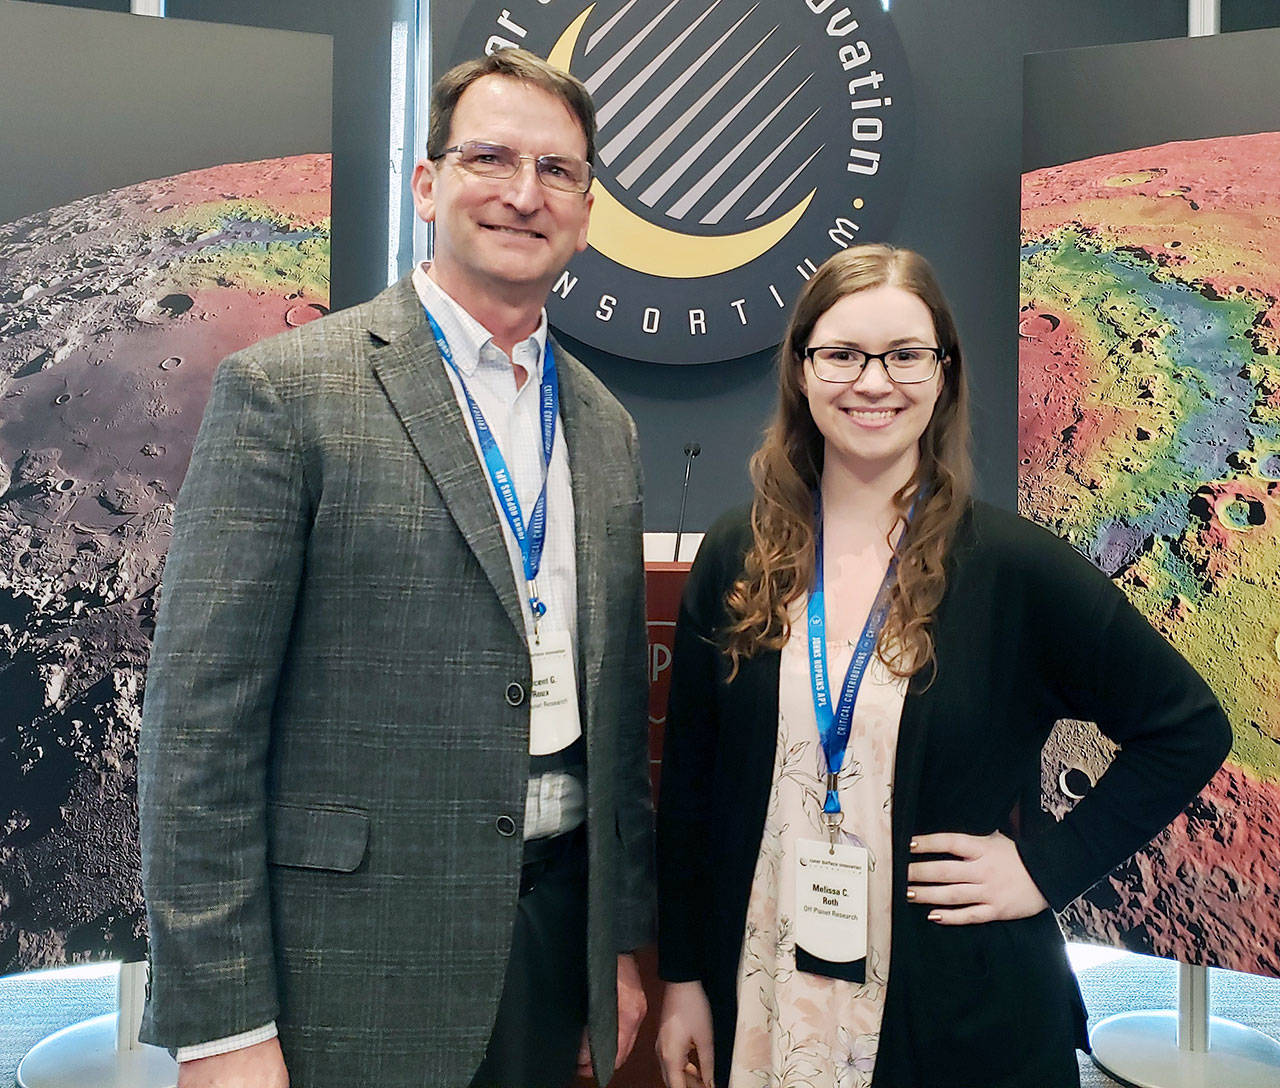 Vince Roux (left) and Melissa Roth, founders of Off Planet Research, at the Lunar Surface Innovation Consortium Conference in February 2020. The company makes lunar soil simulants for researchers. (Off Planet Research)